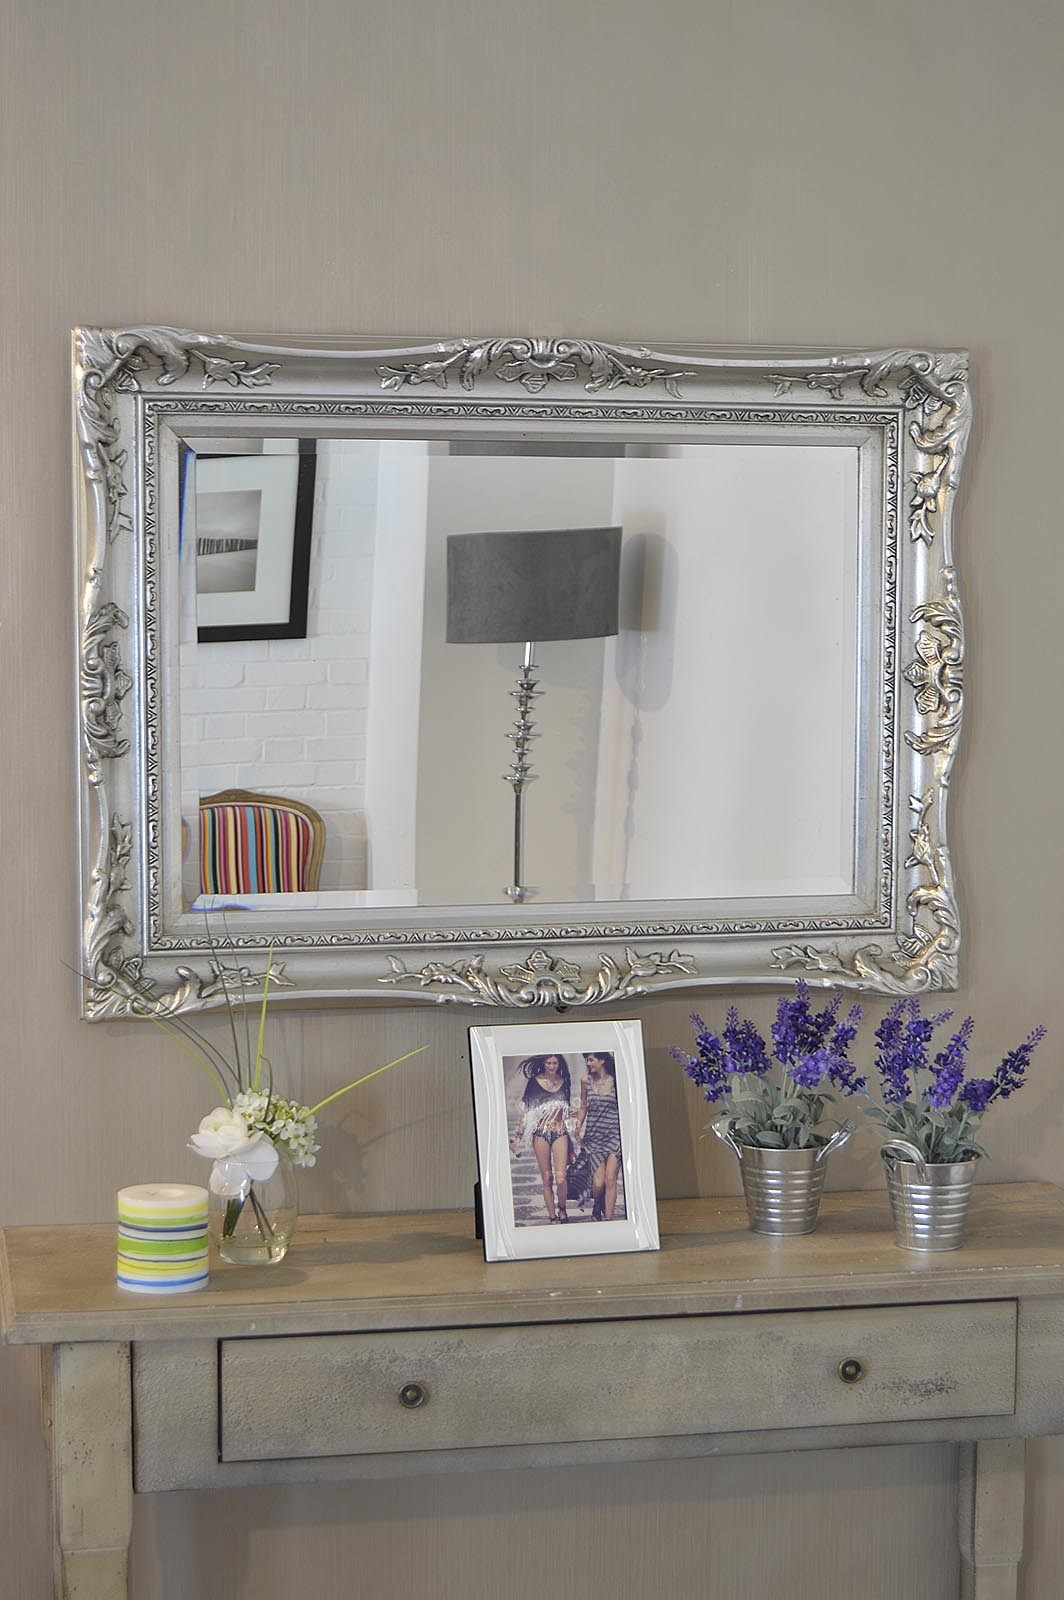 Featured Image of Large Ornate Silver Mirror